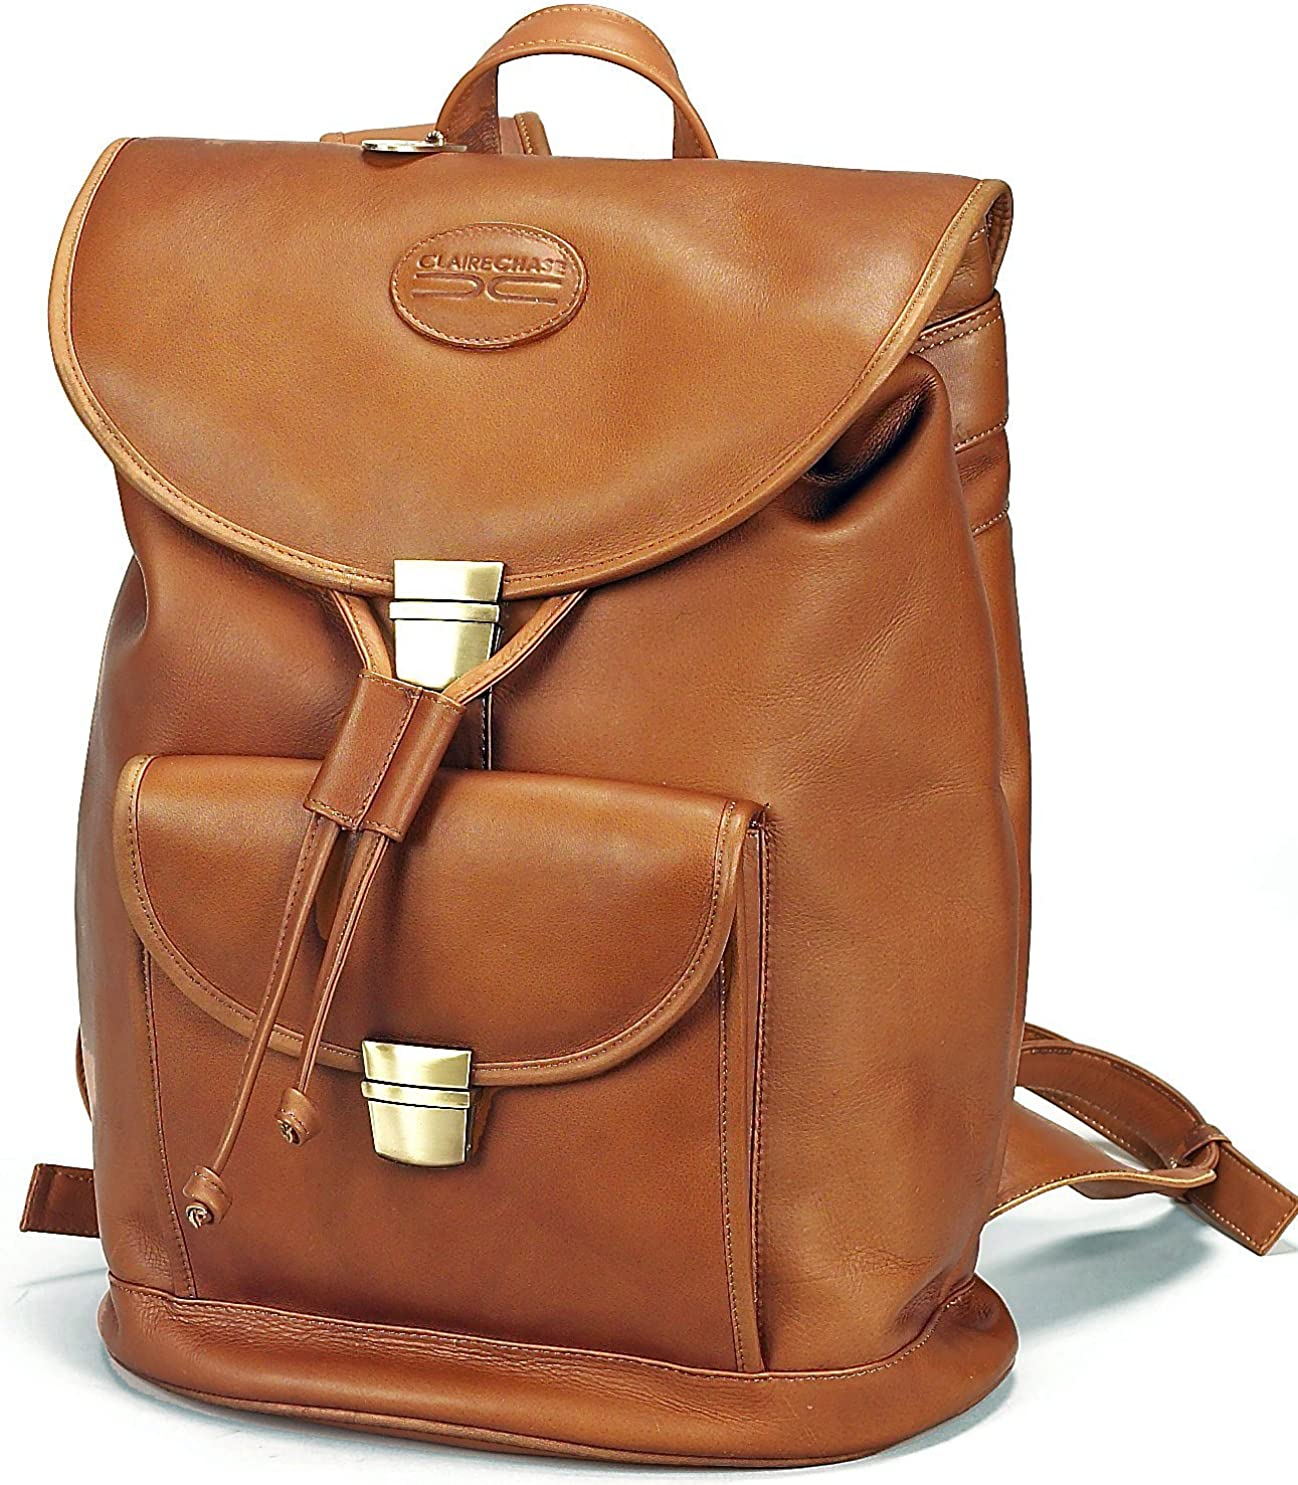 Claire Chase Classic Vaqueta Leather Laptop Backpack Tan